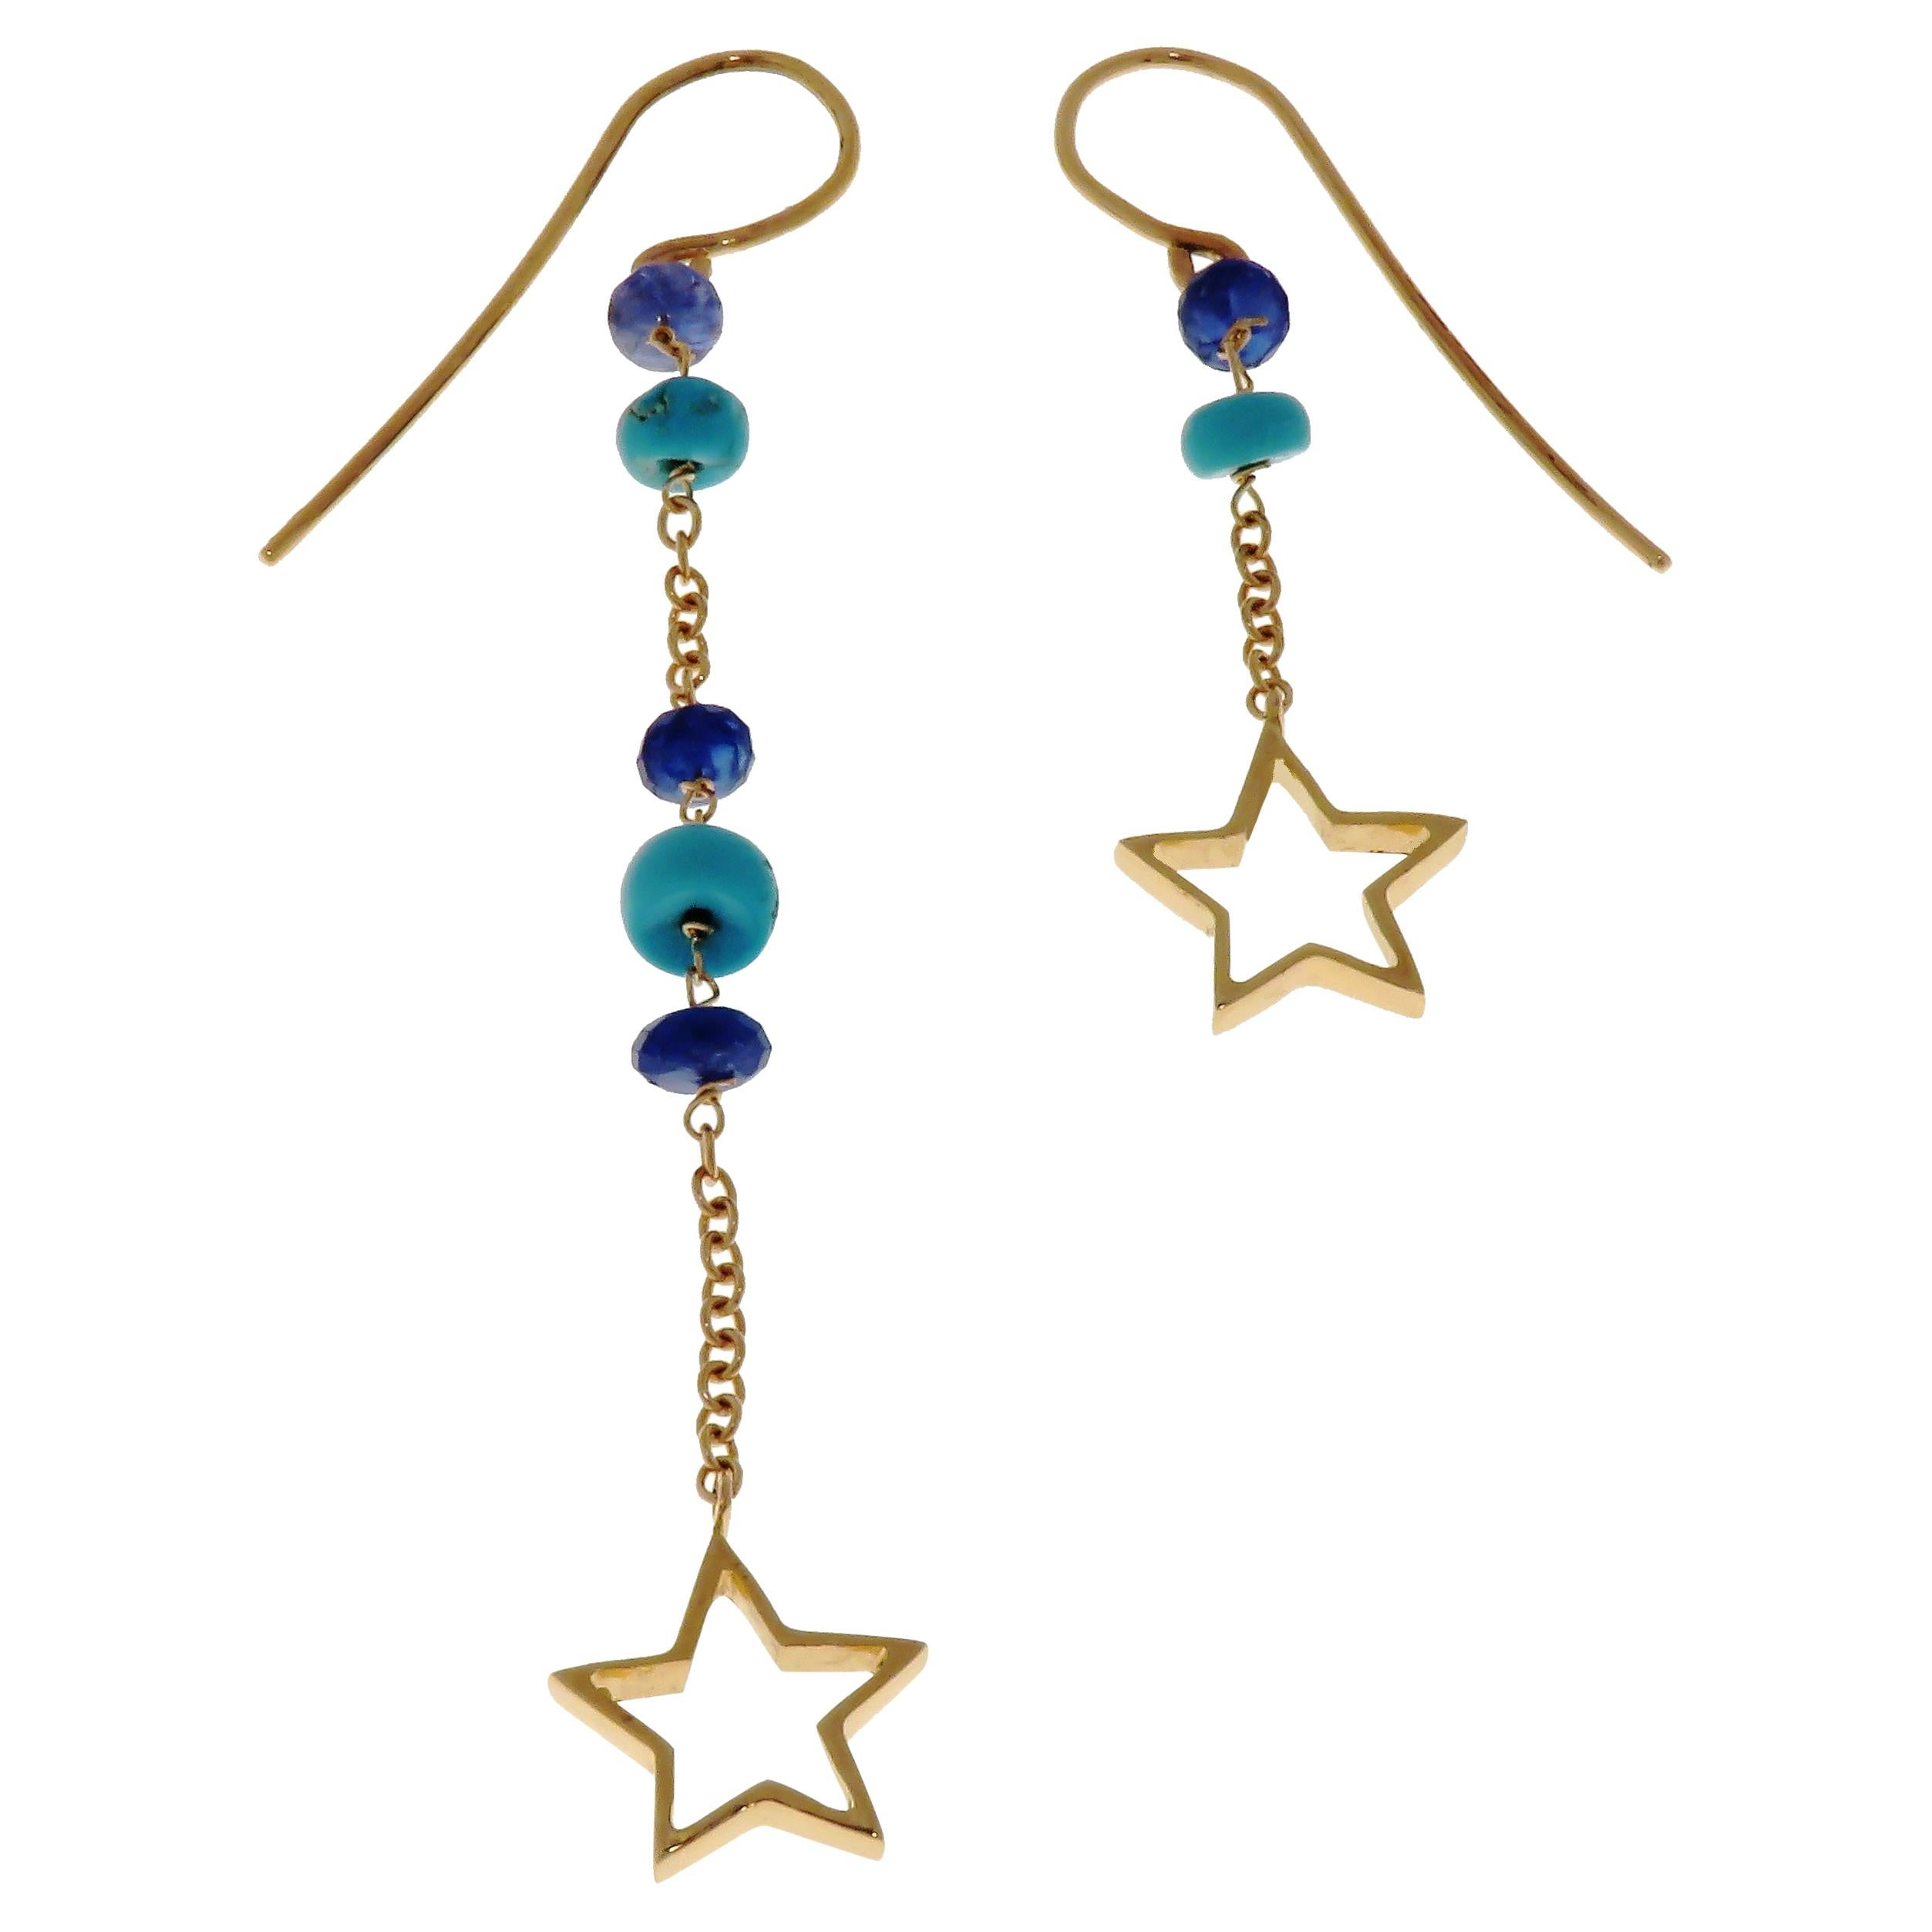 Turquoises Sapphires 9 Karat Rose Gold Dangle Earrings Handcrafted in Italy